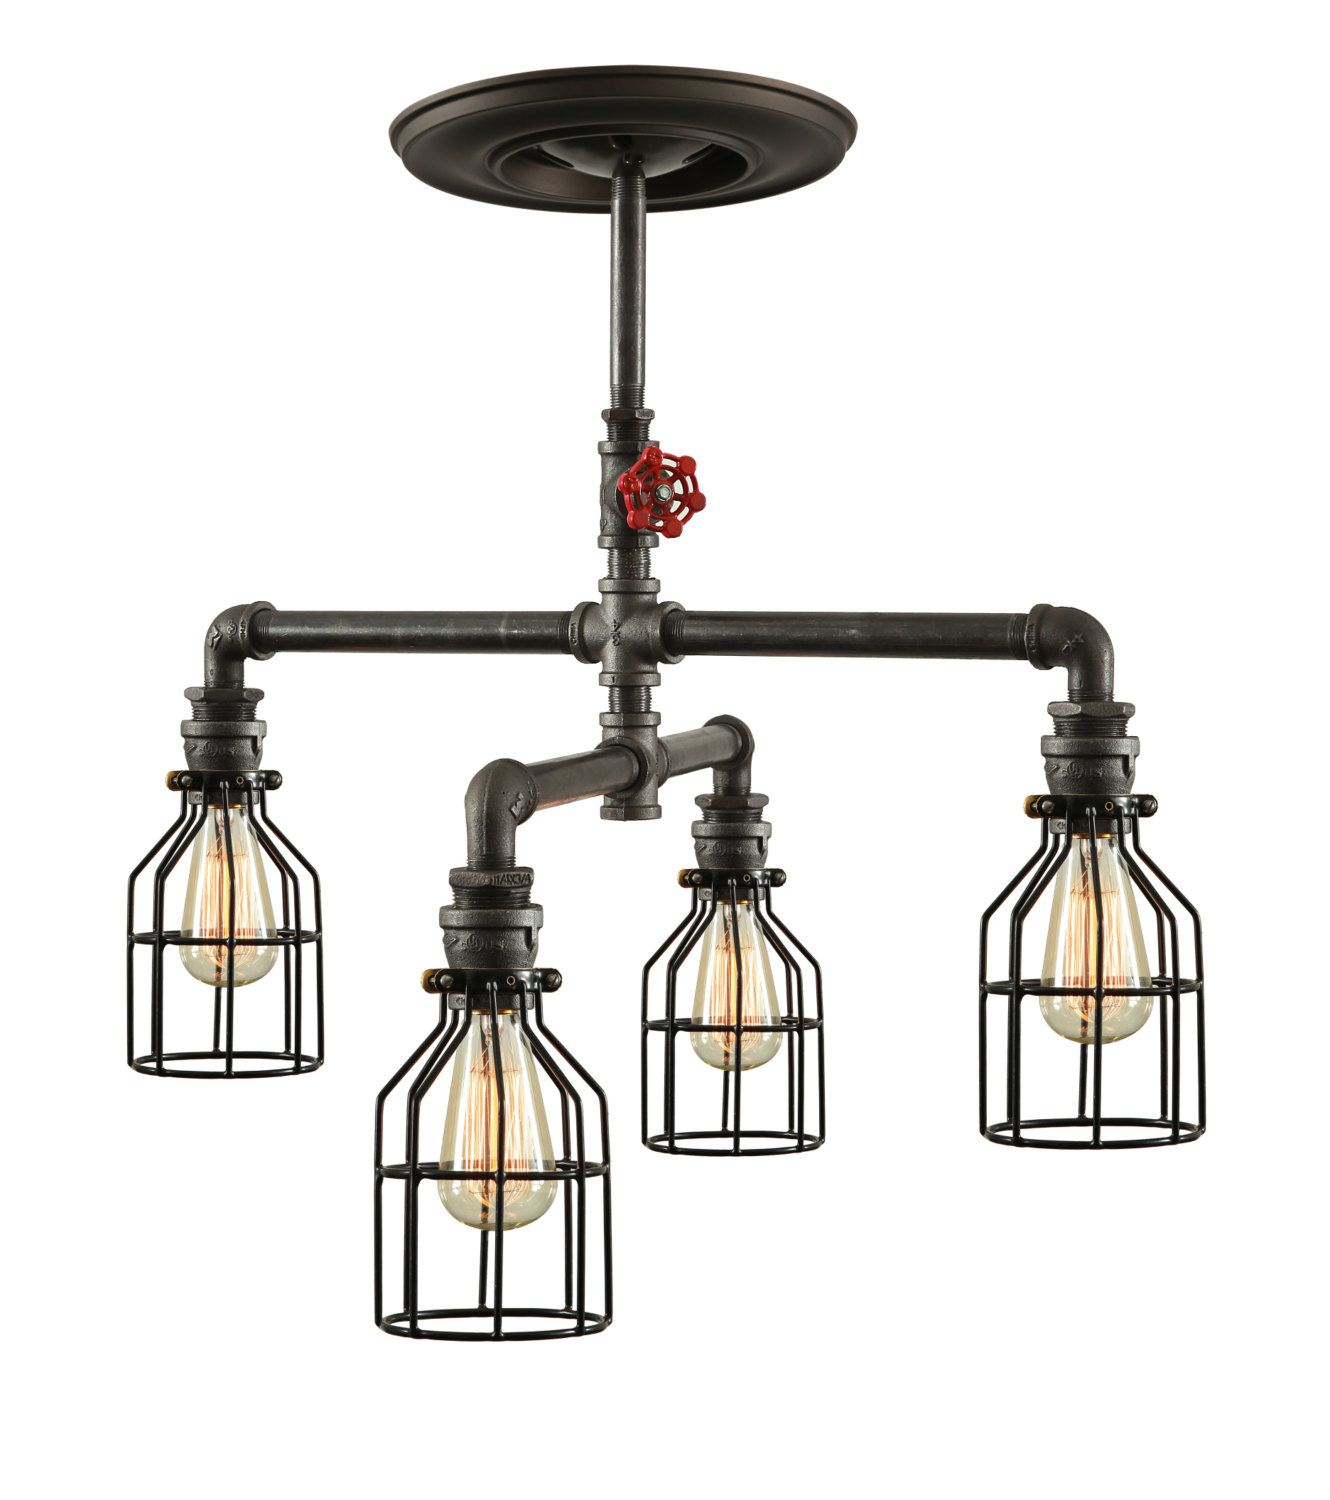 Diy Industrial Bathroom Light Fixtures - Steampunk industrial ceiling light west ninth vintage